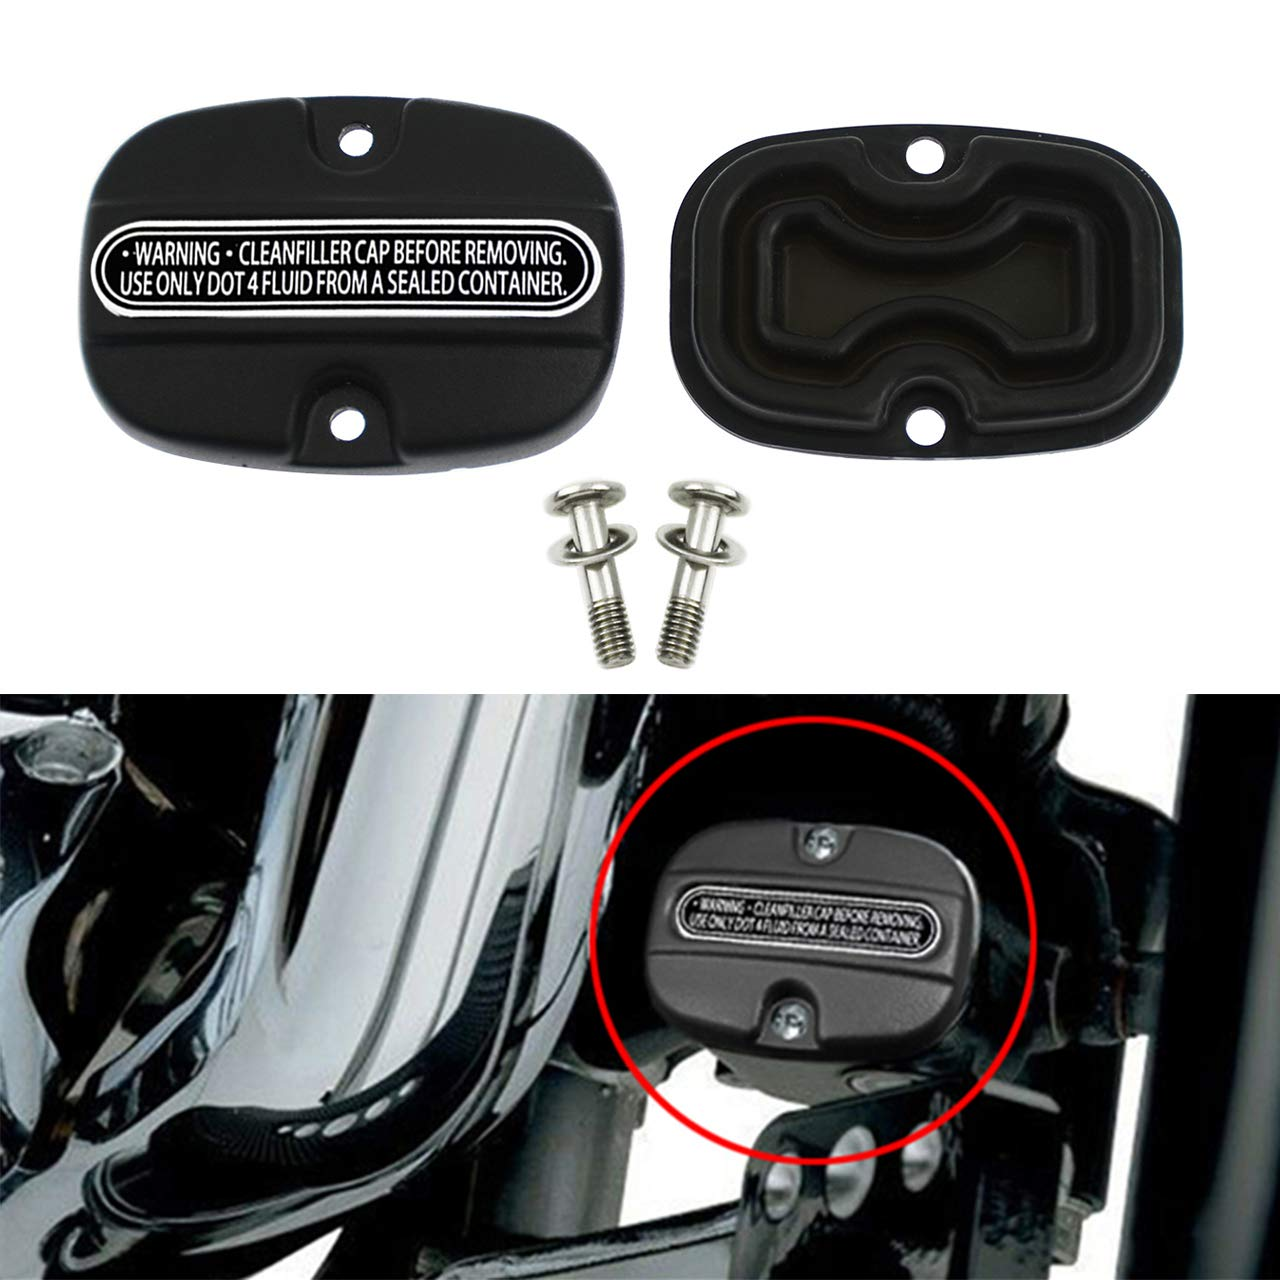 YHMTIVTU Rear Brake Master Cylinder Cover Compatible with Harley Touring Road King FLHR Street Electra Glide 2008-2019 Chrome